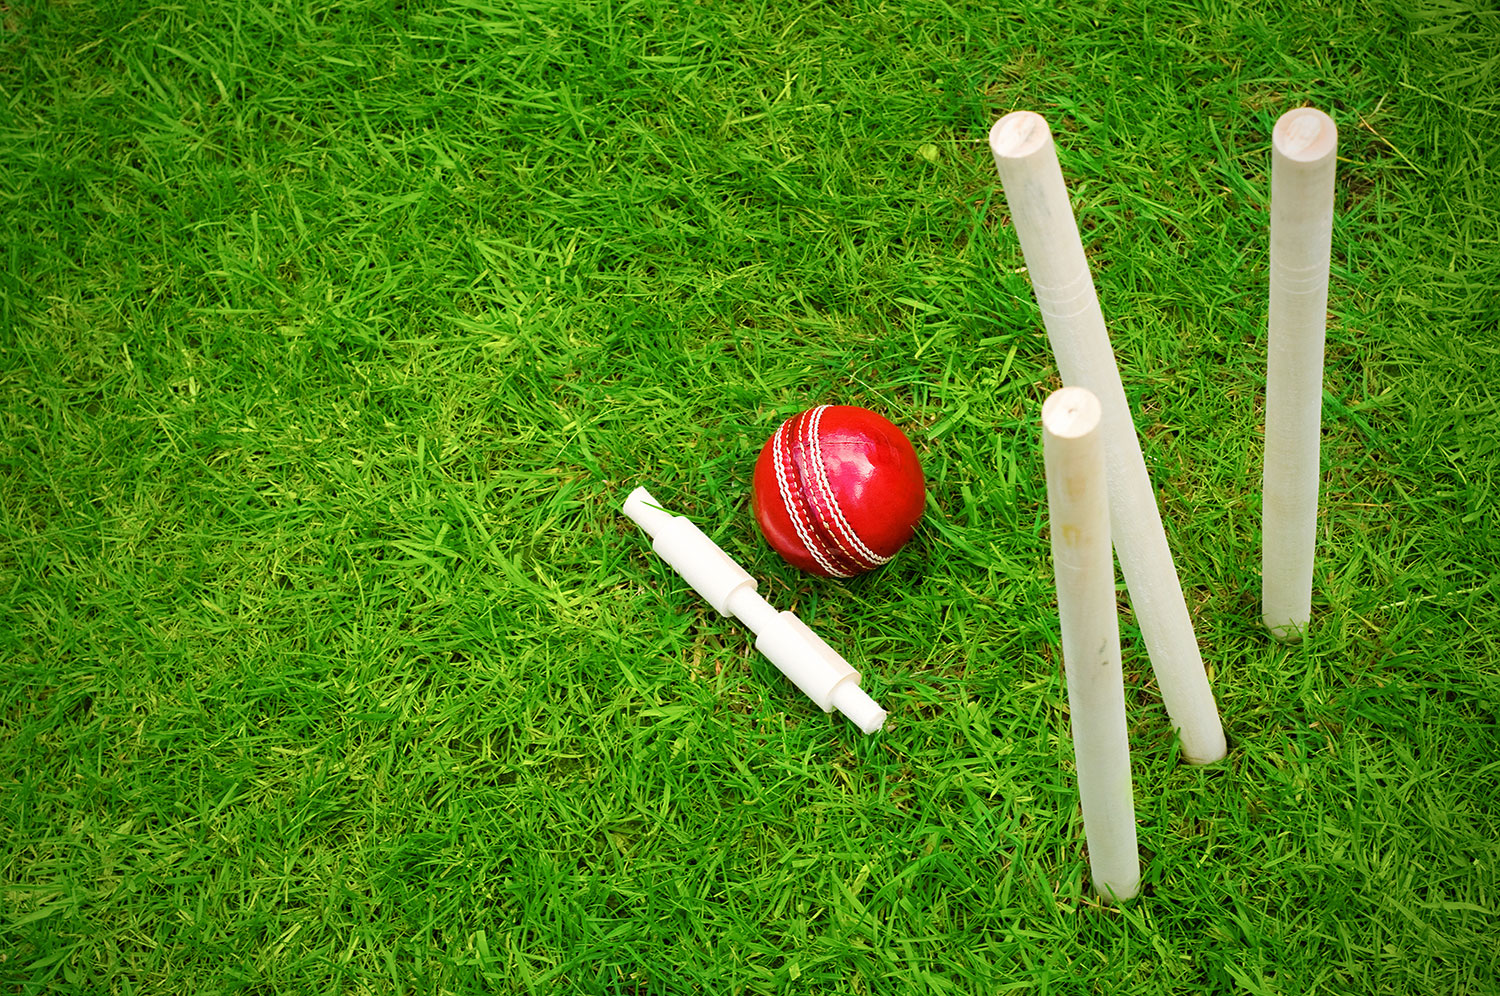 The most popular sport in Bangladesh is cricket